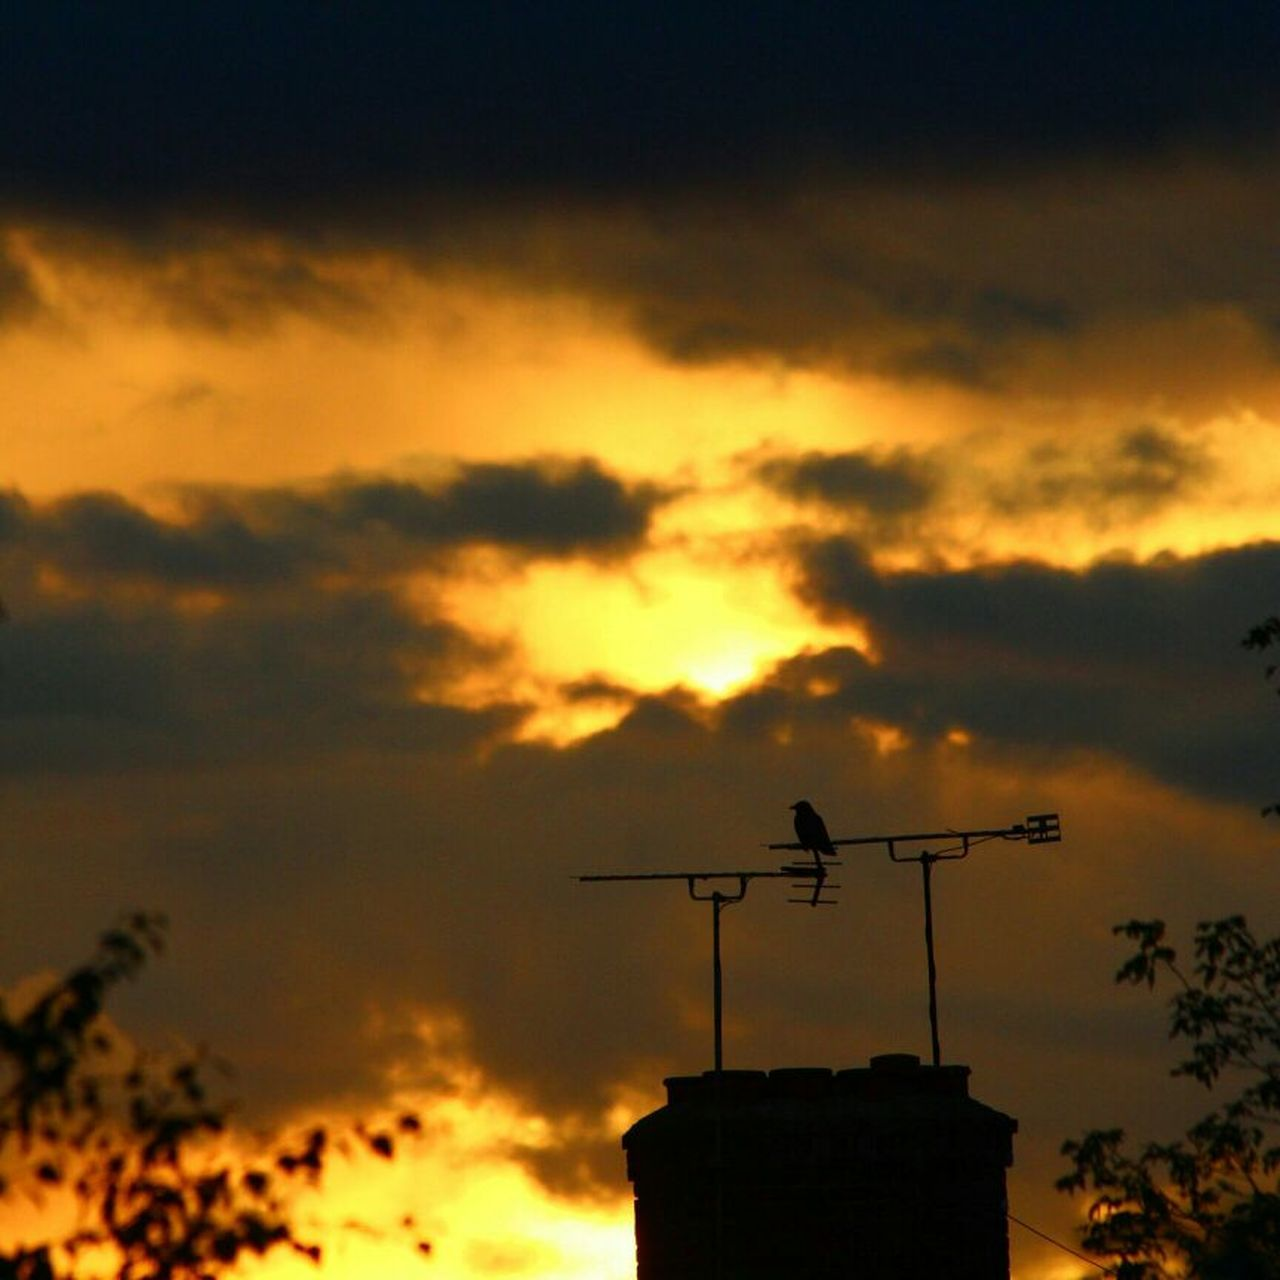 Aerial Antenna Architecture Beauty In Nature Bird Bird On A Aerial Bird On A Chimney Building Built Structure Chimney Cloud Cloud - Sky Clouds Cloudy Dramatic Sky Nature Orange Color Outdoors Scenics Sillouette Sky Sun Sunset Television Aerial Weather